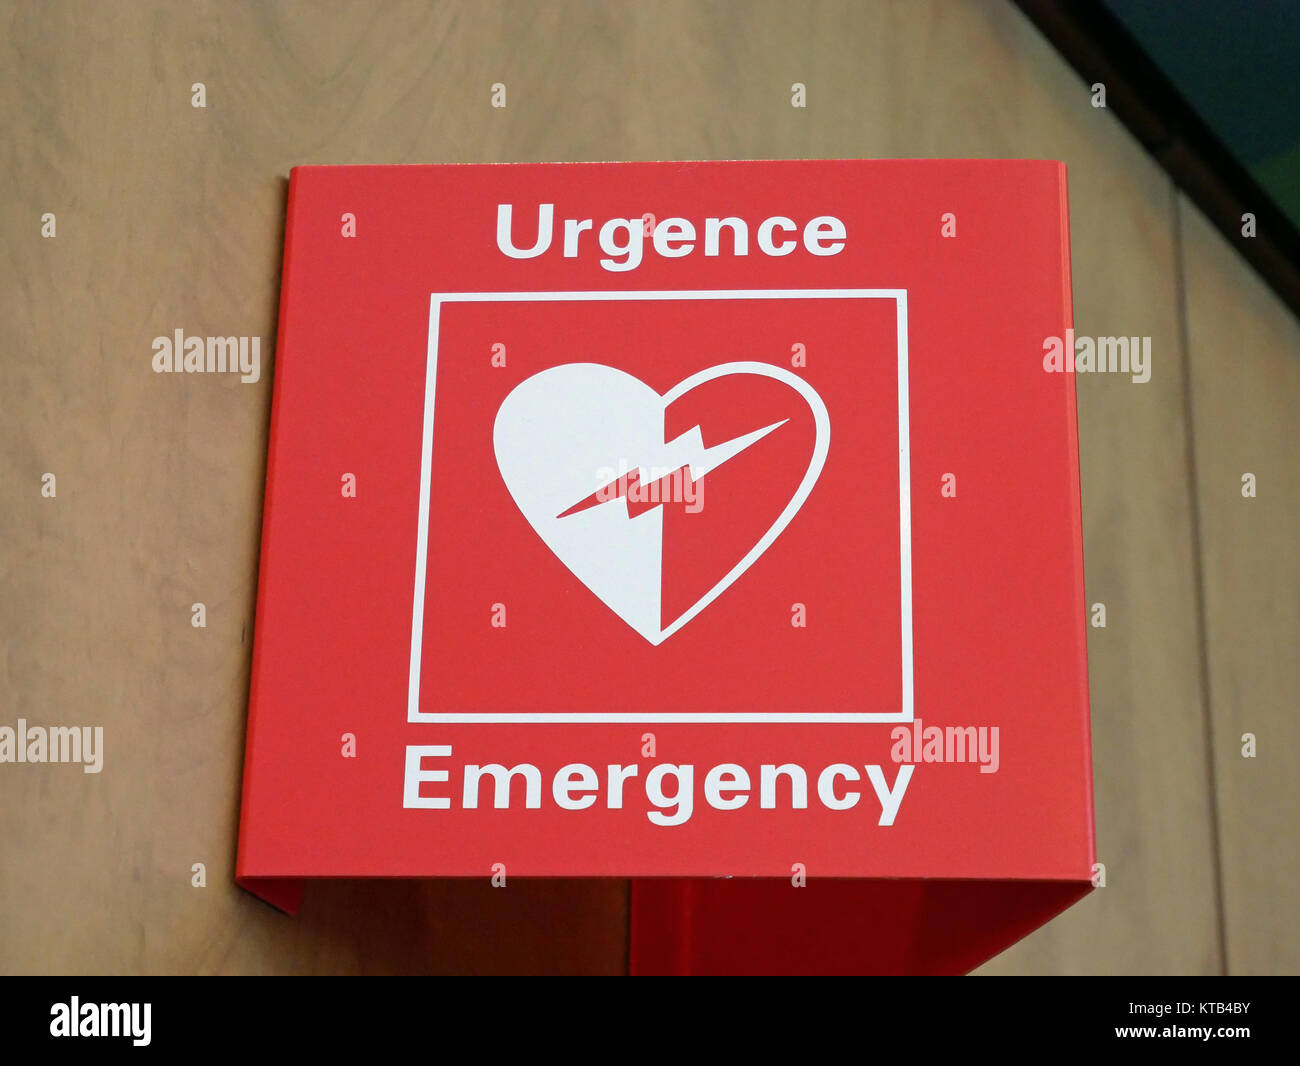 Emergency sign in an airport - Stock Image